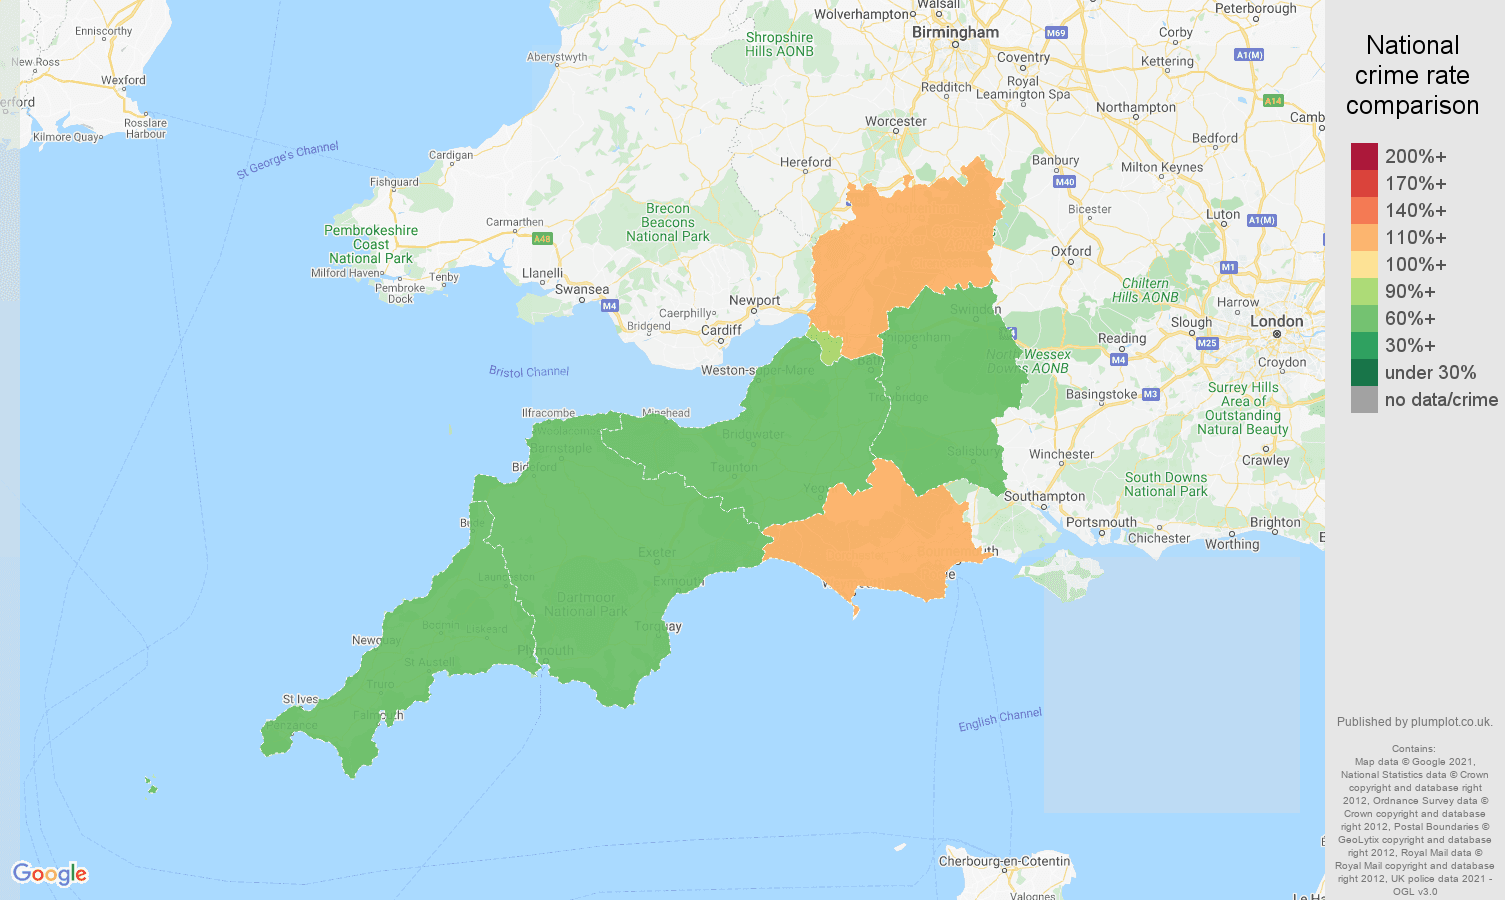 South West antisocial behaviour crime rate comparison map